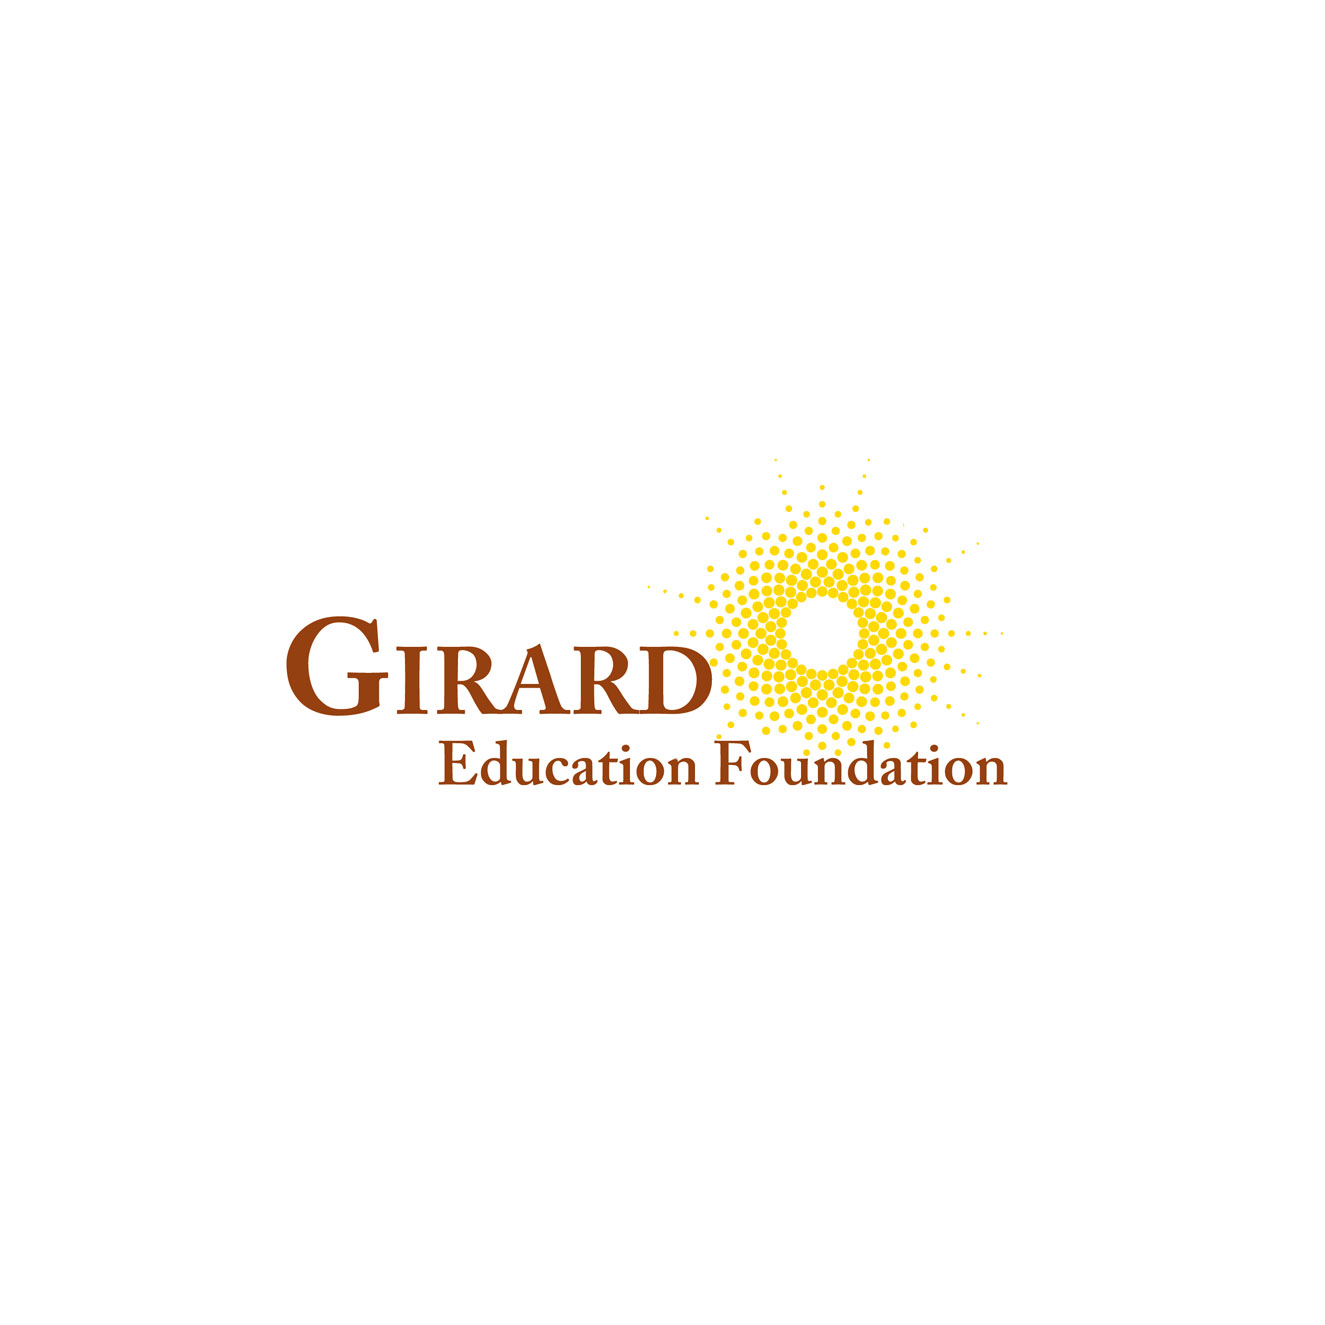 Girard Education Foundation logo design by Ashley Lewis